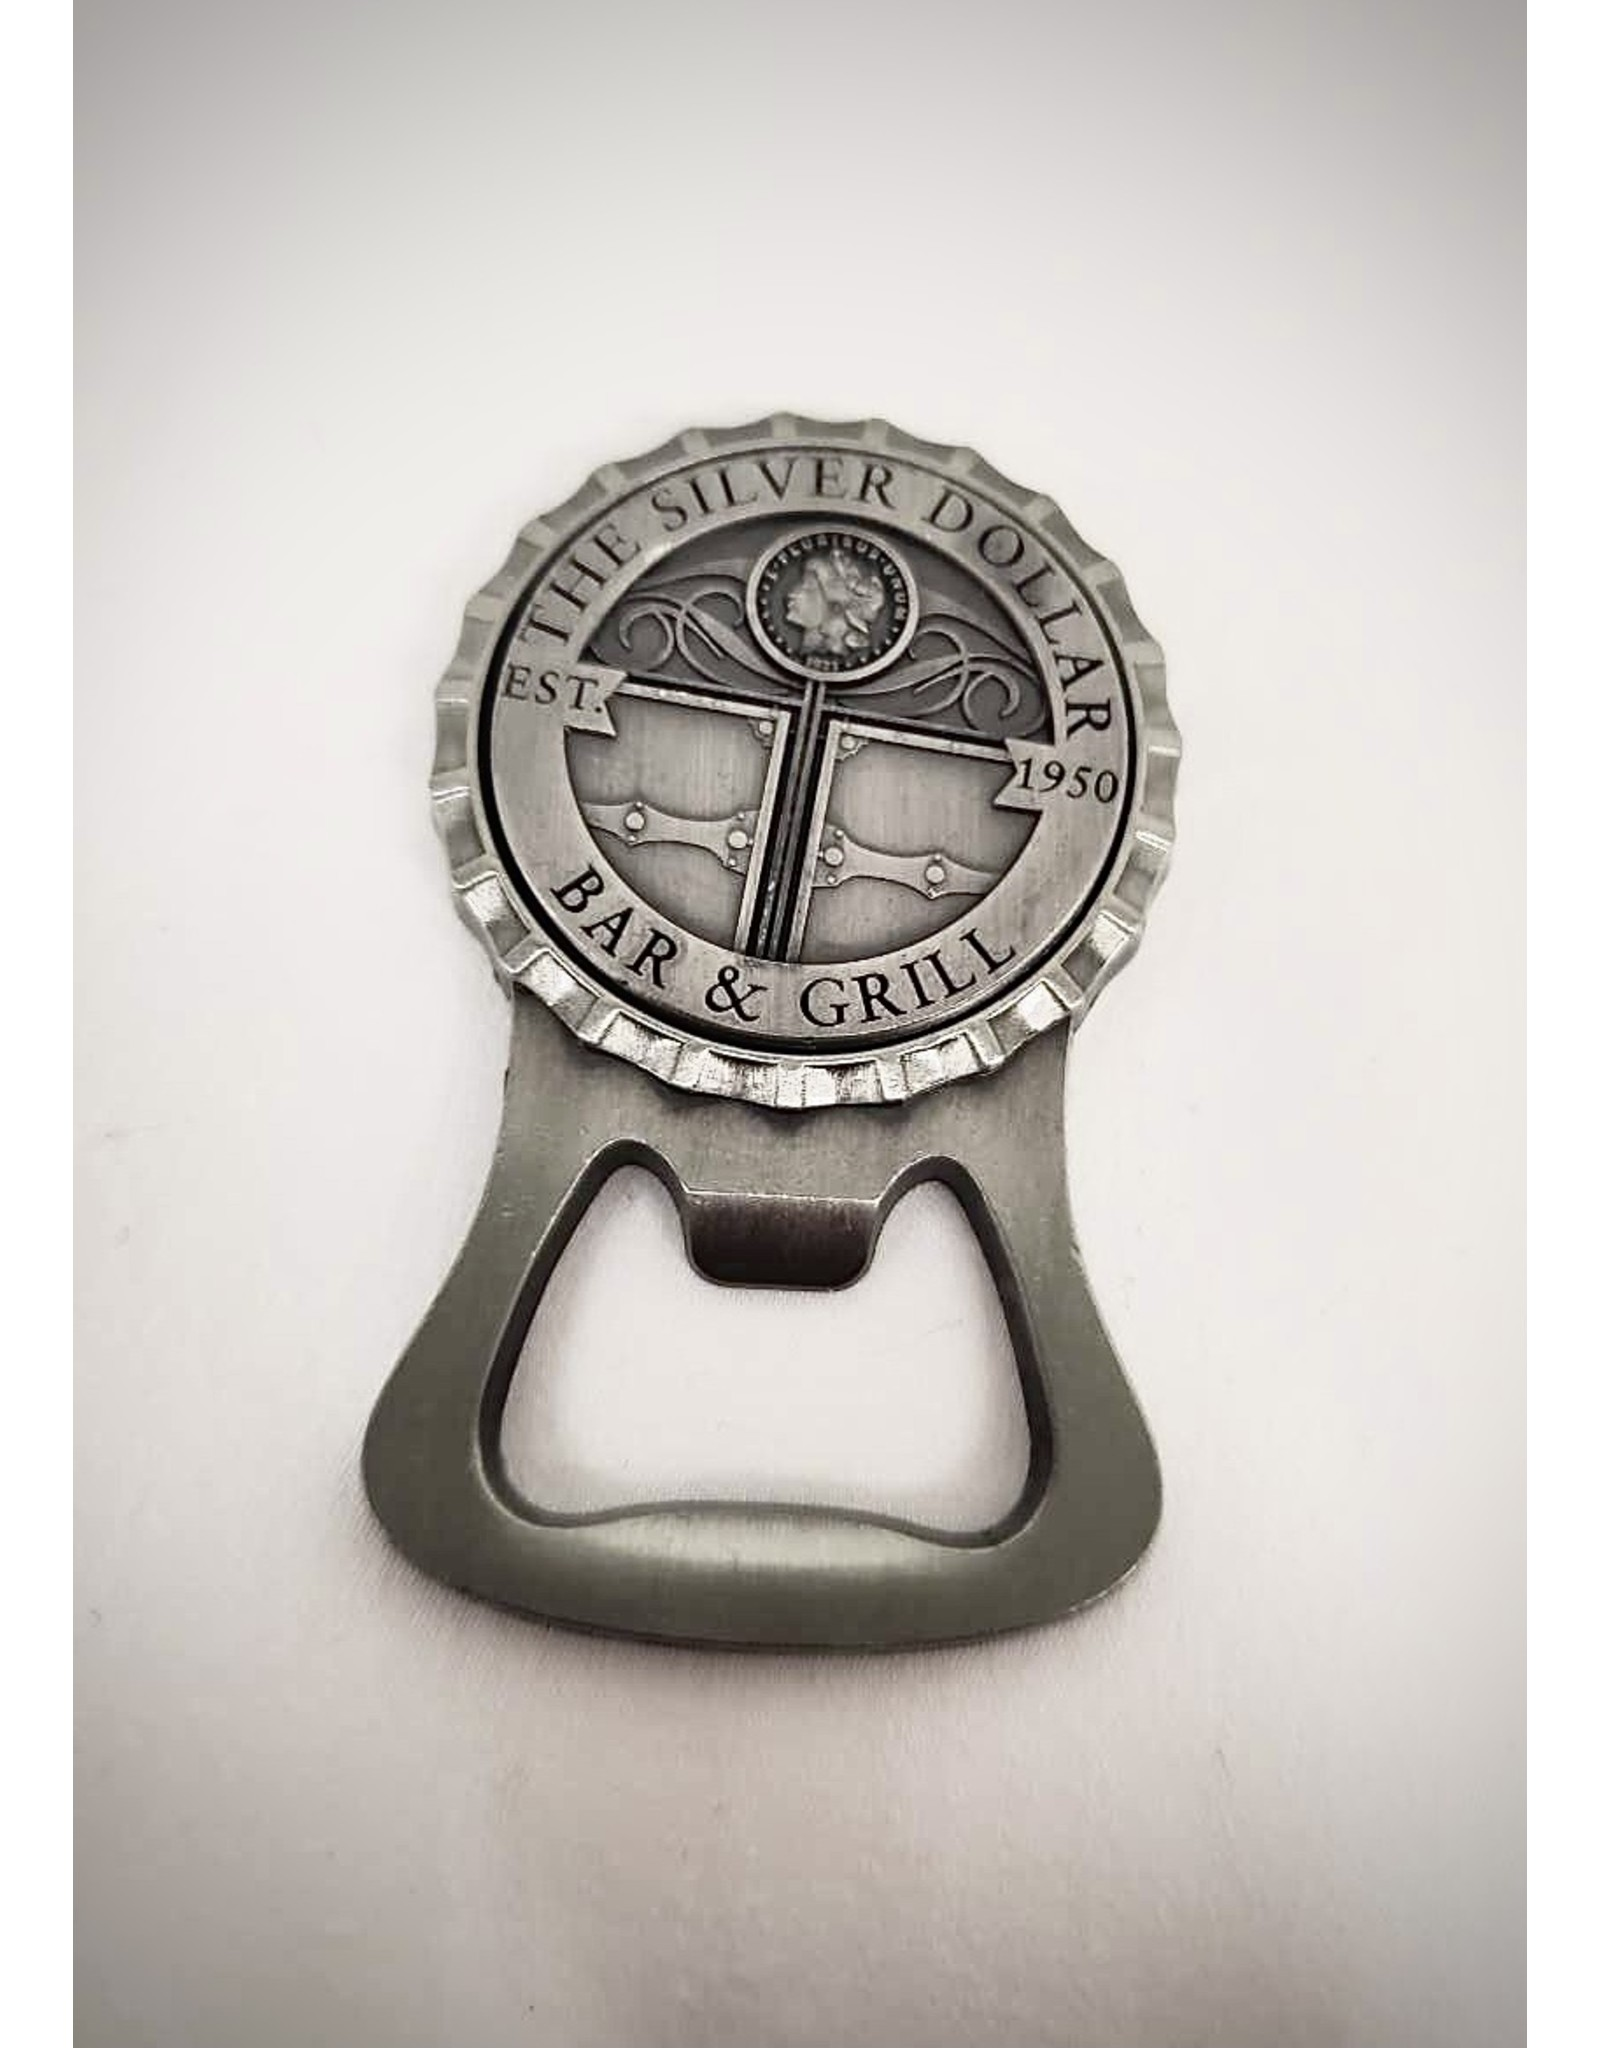 Silver Dollar Bar and Grill Bottle Opener Magnet